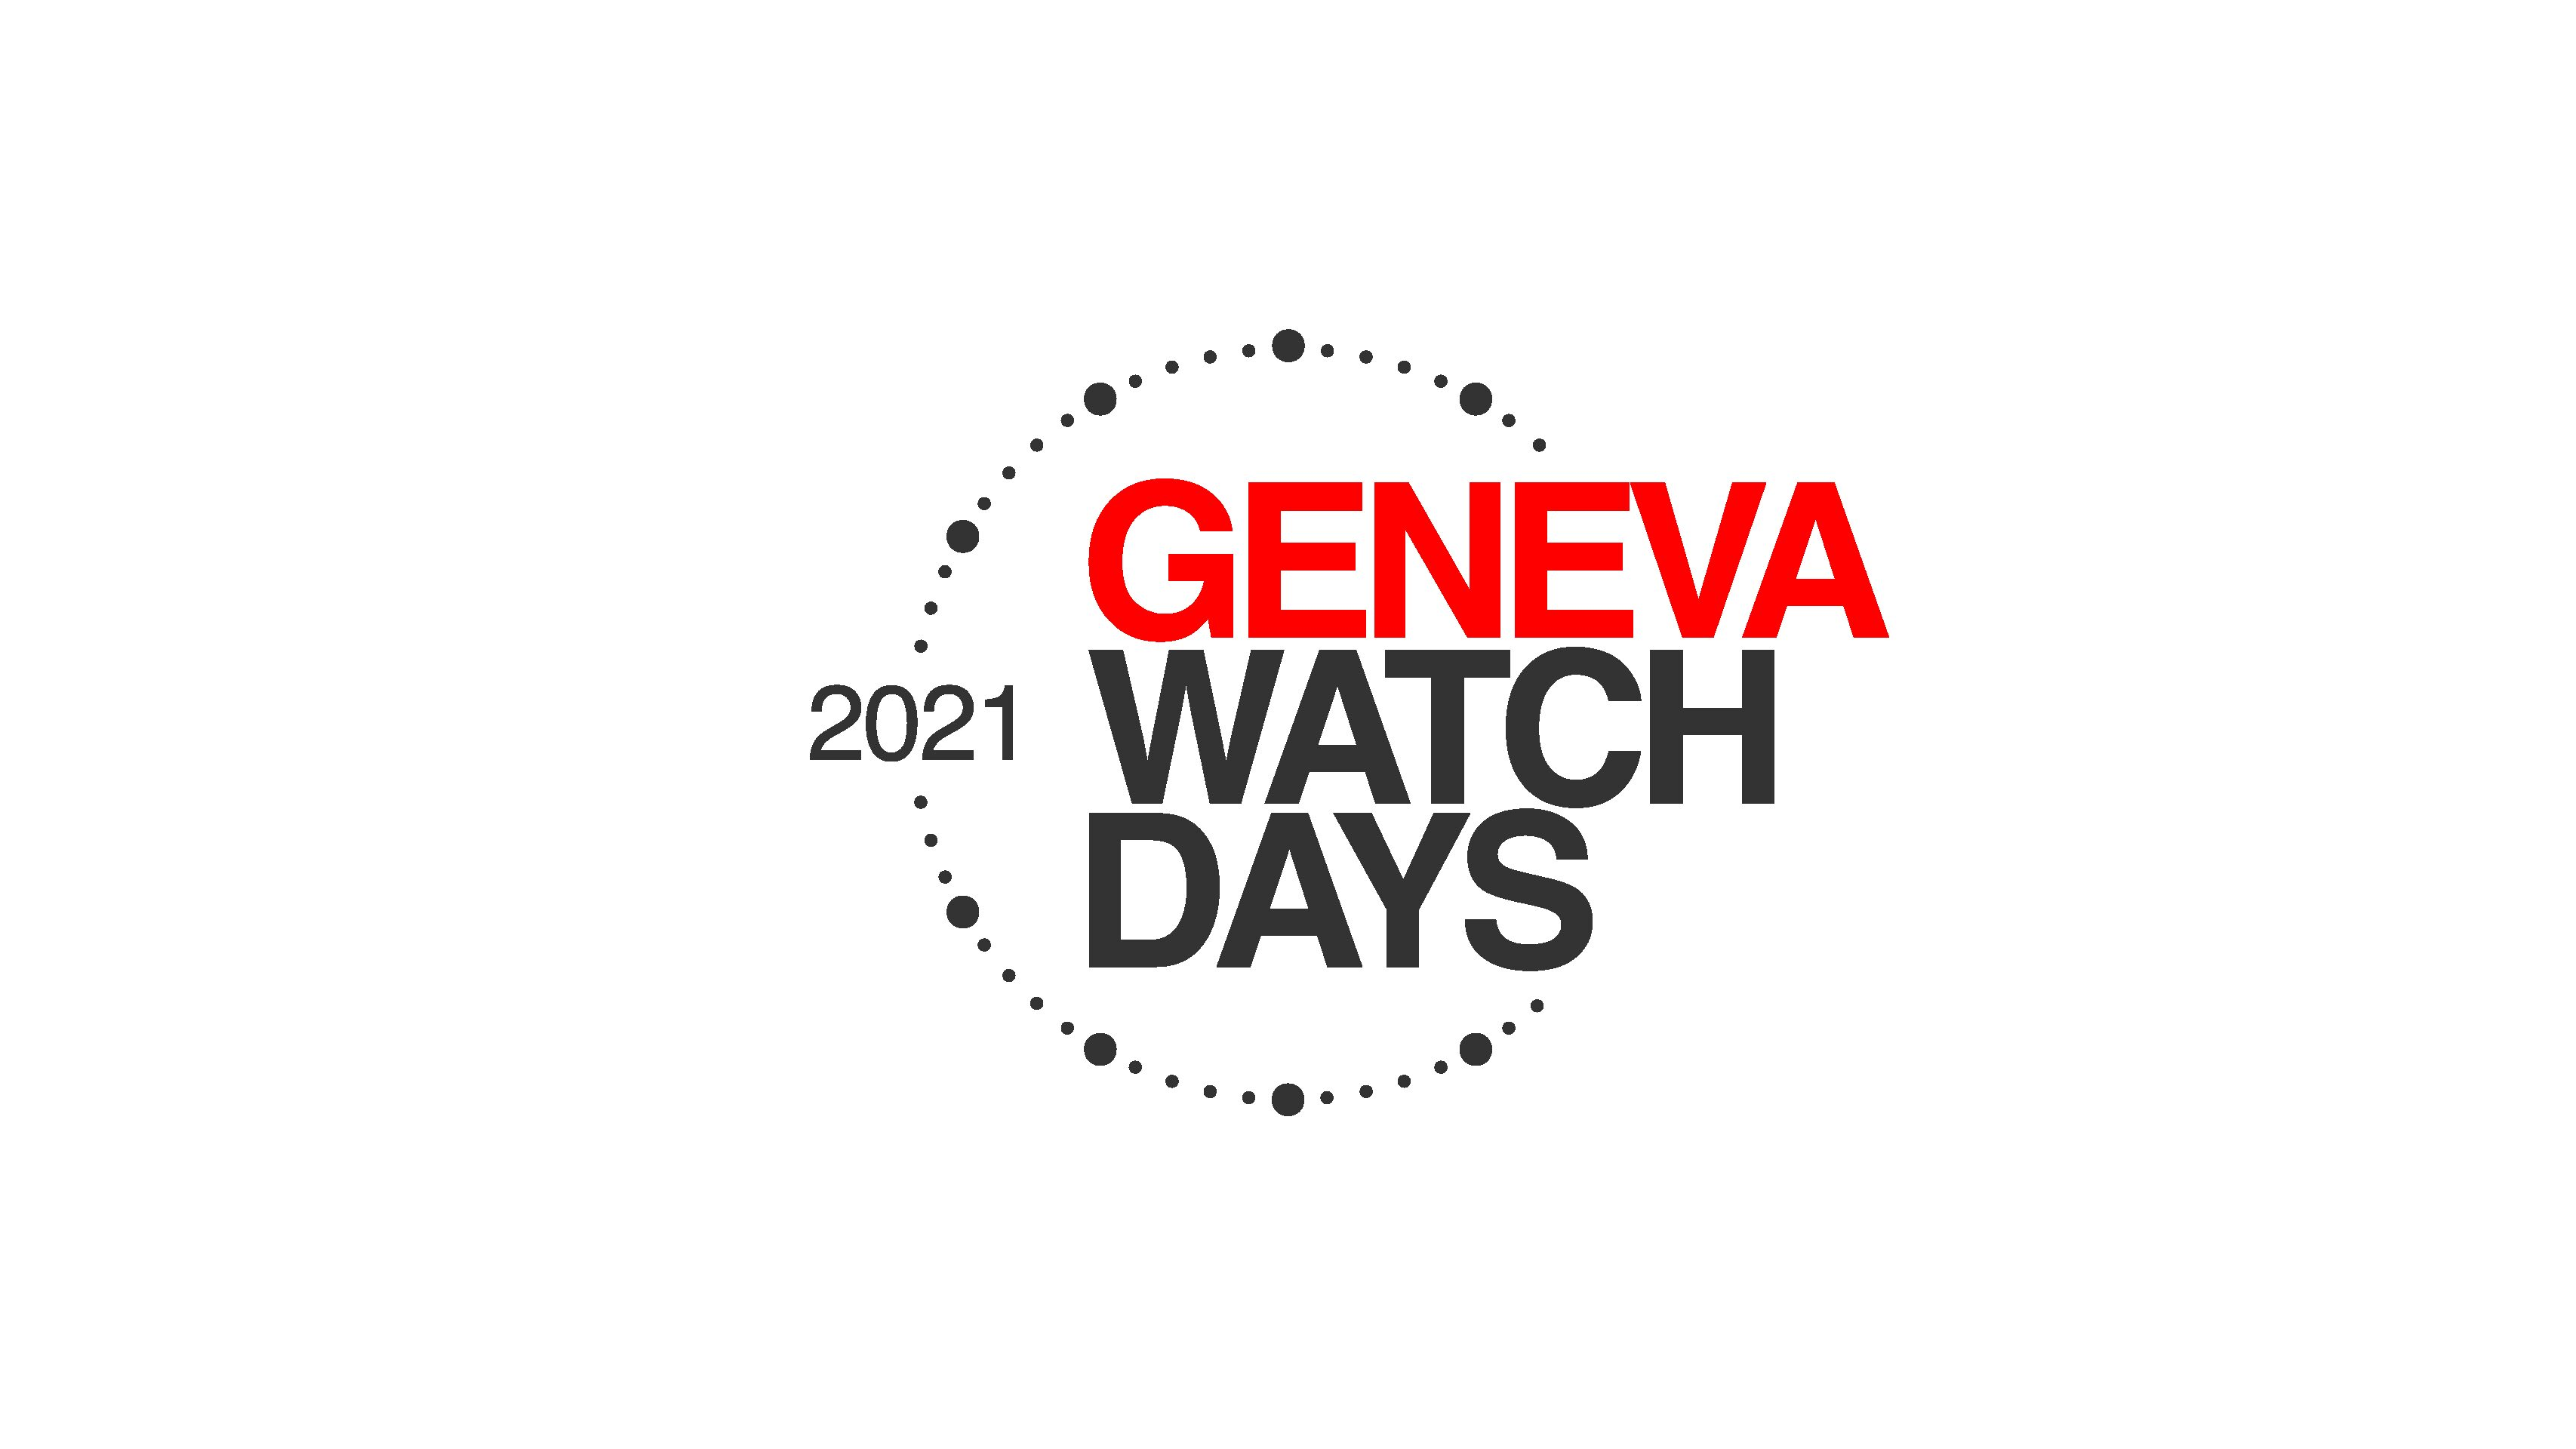 Geneva Watch Days Scheduled From August 30th To September 3rd 2021